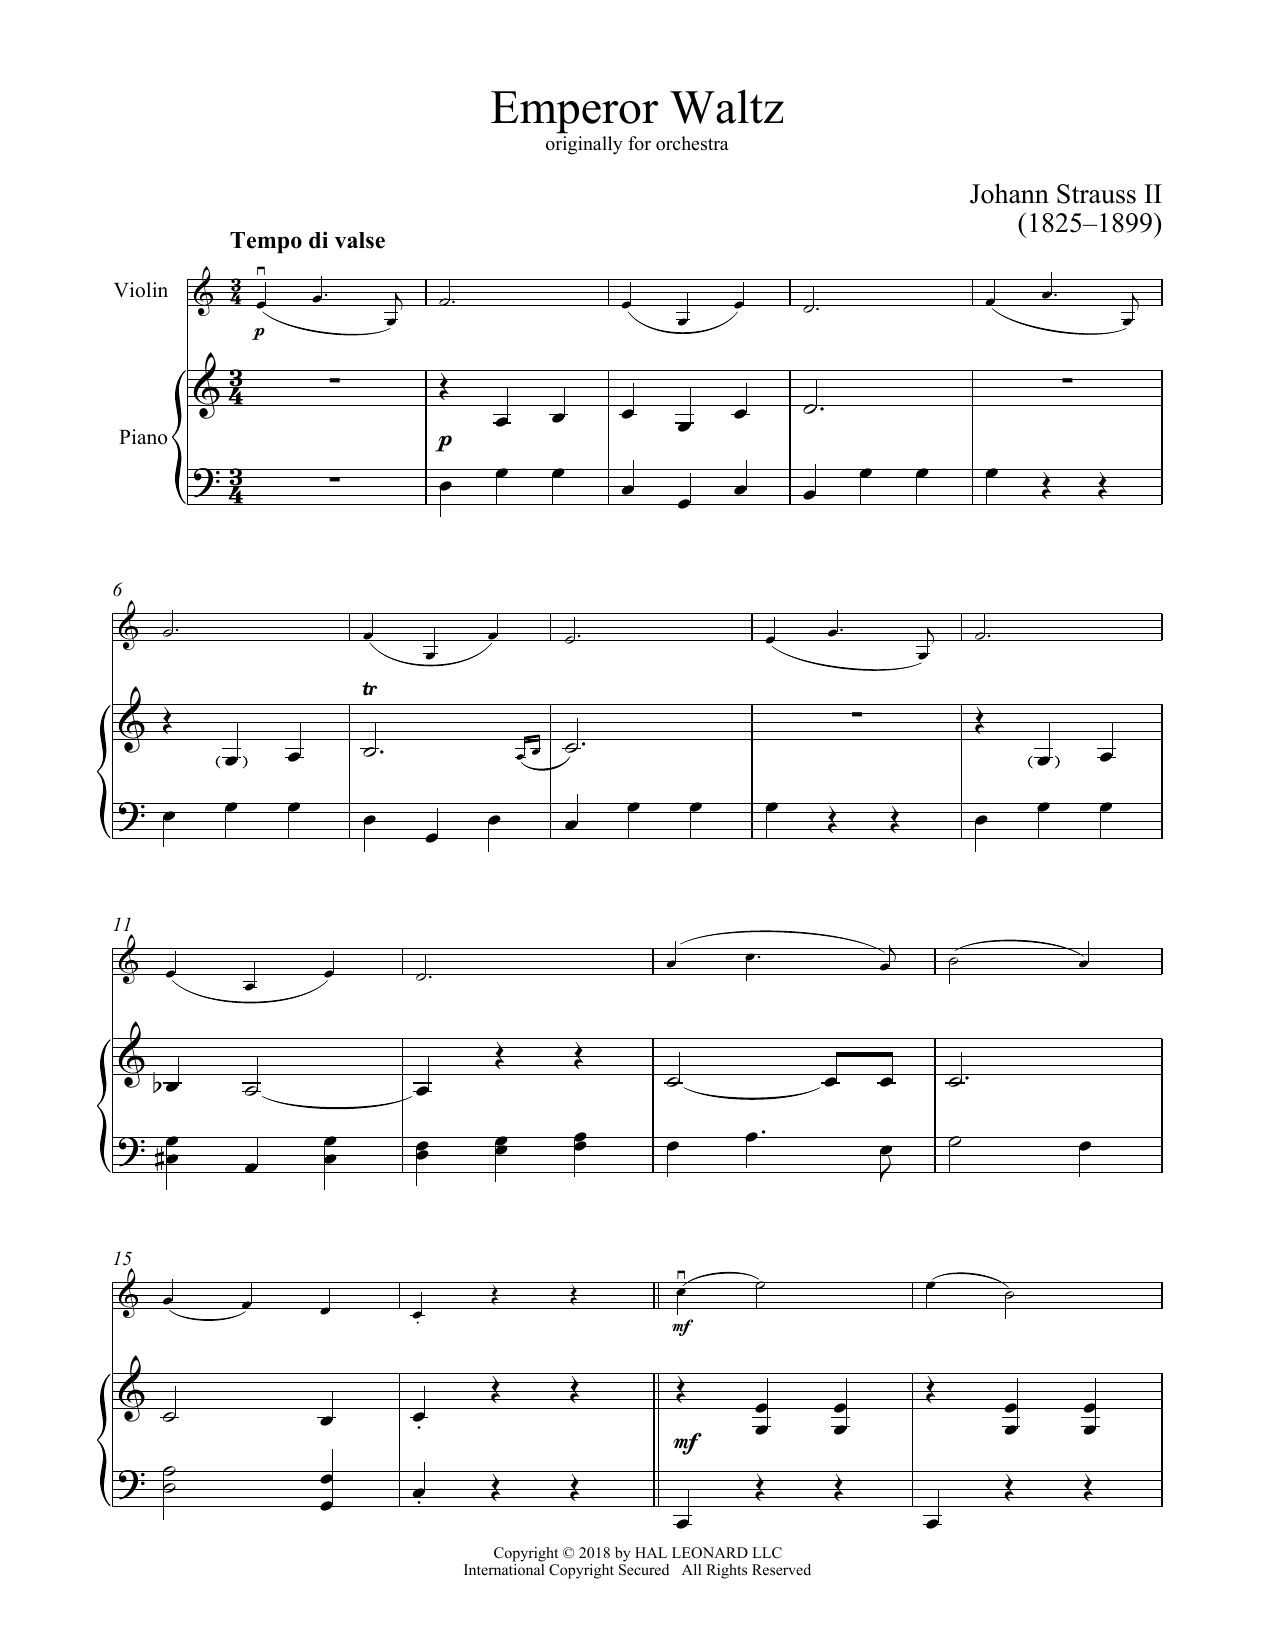 Johann Strauss II Emperor Waltz, Op. 437 sheet music notes and chords. Download Printable PDF.